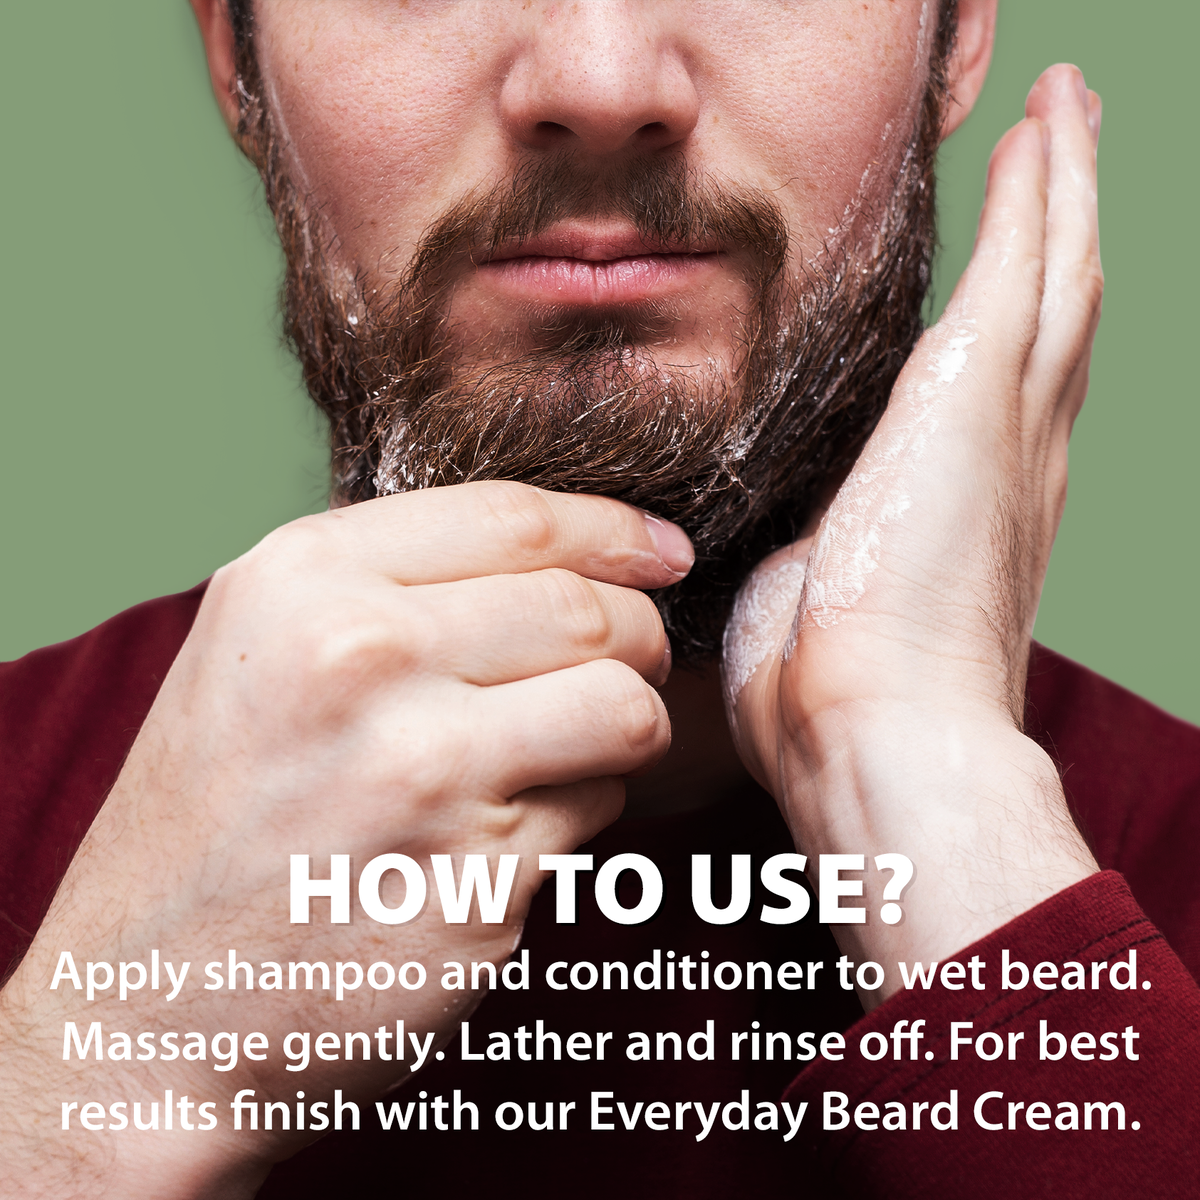 LetsShave Beard & Hair Shampoo + Conditioner 2 in 1 Wash for Soft Shiny Frizz Free Beard, 150 ml